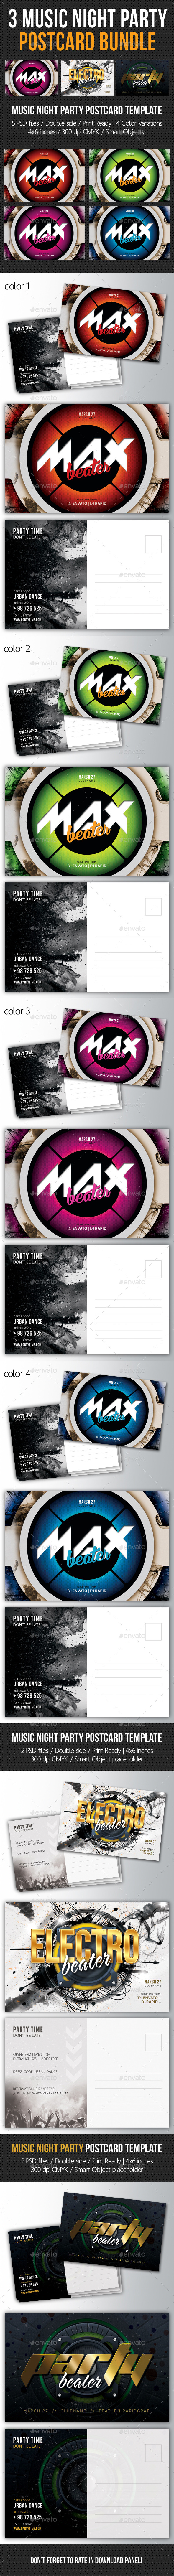 GraphicRiver 3 in 1 Music Night Party Postcard Bundle 02 11147017